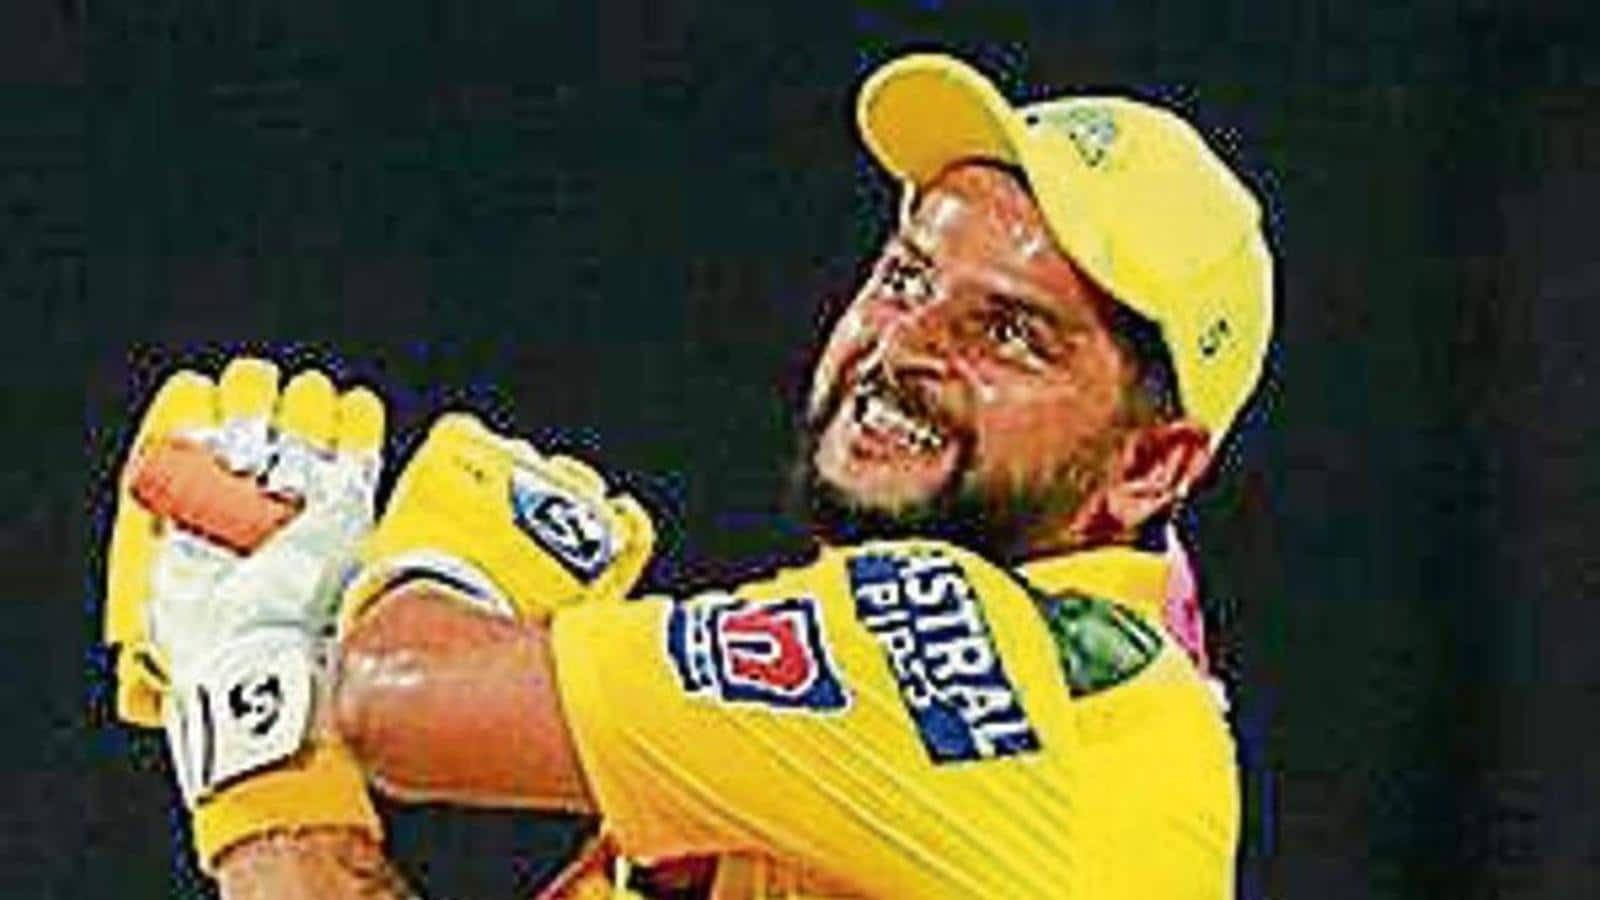 Making it to Lucknow IPL team will be no cakewalk for Uttar Pradesh players